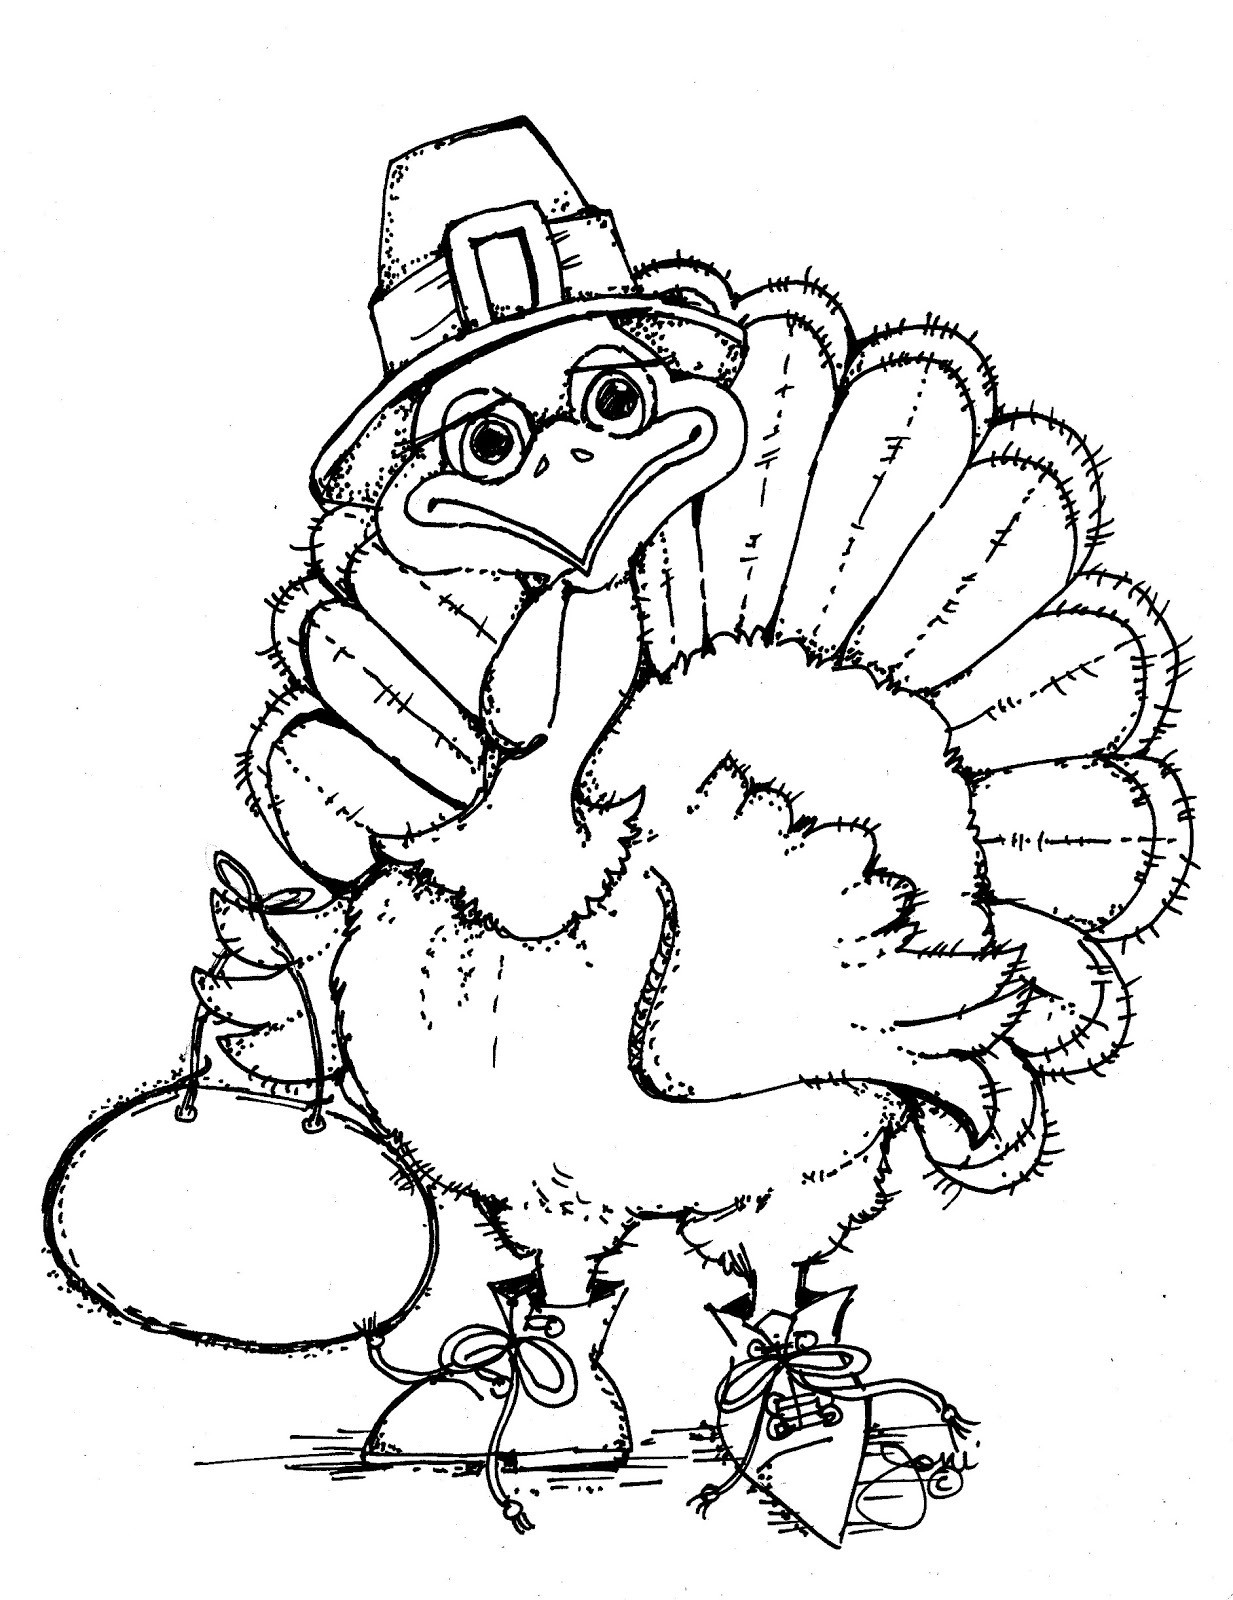 Free Coloring Pages Turkey Thanksgiving  Free Printable Turkey Coloring Pages For Kids